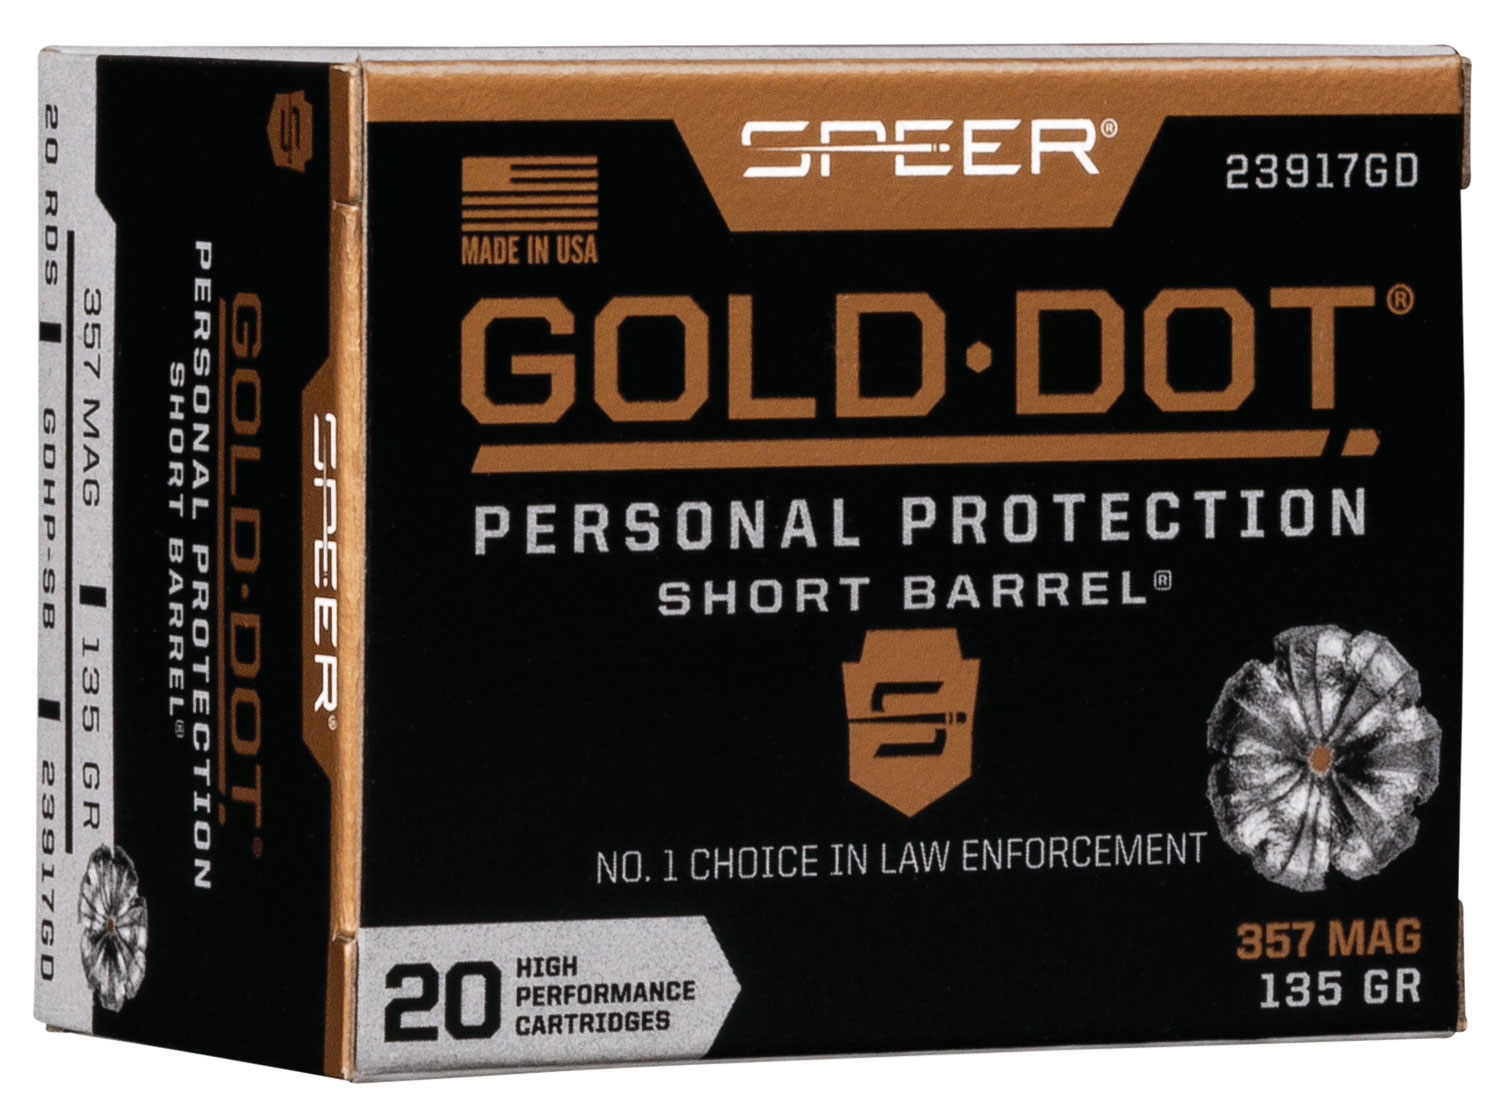 Speer Ammo 23917GD Gold Dot Personal Protection  357 Magnum 135 GR Hollow Point Short Barrel 20 Bx/ 10 Cs